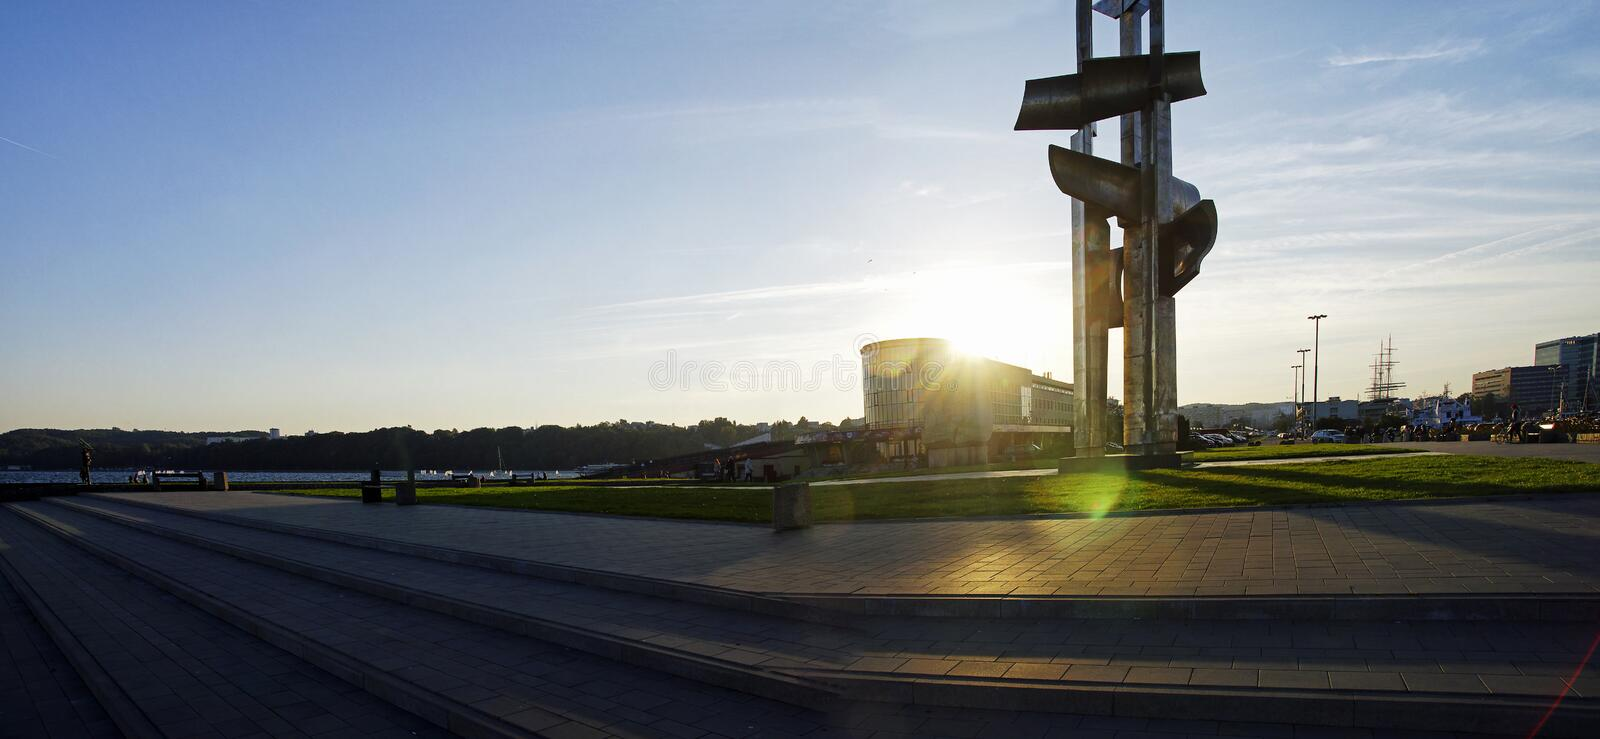 The Kosciuszko Square - the one of most representation places in Gdynia late afternoon, Gdynia royalty free stock photos